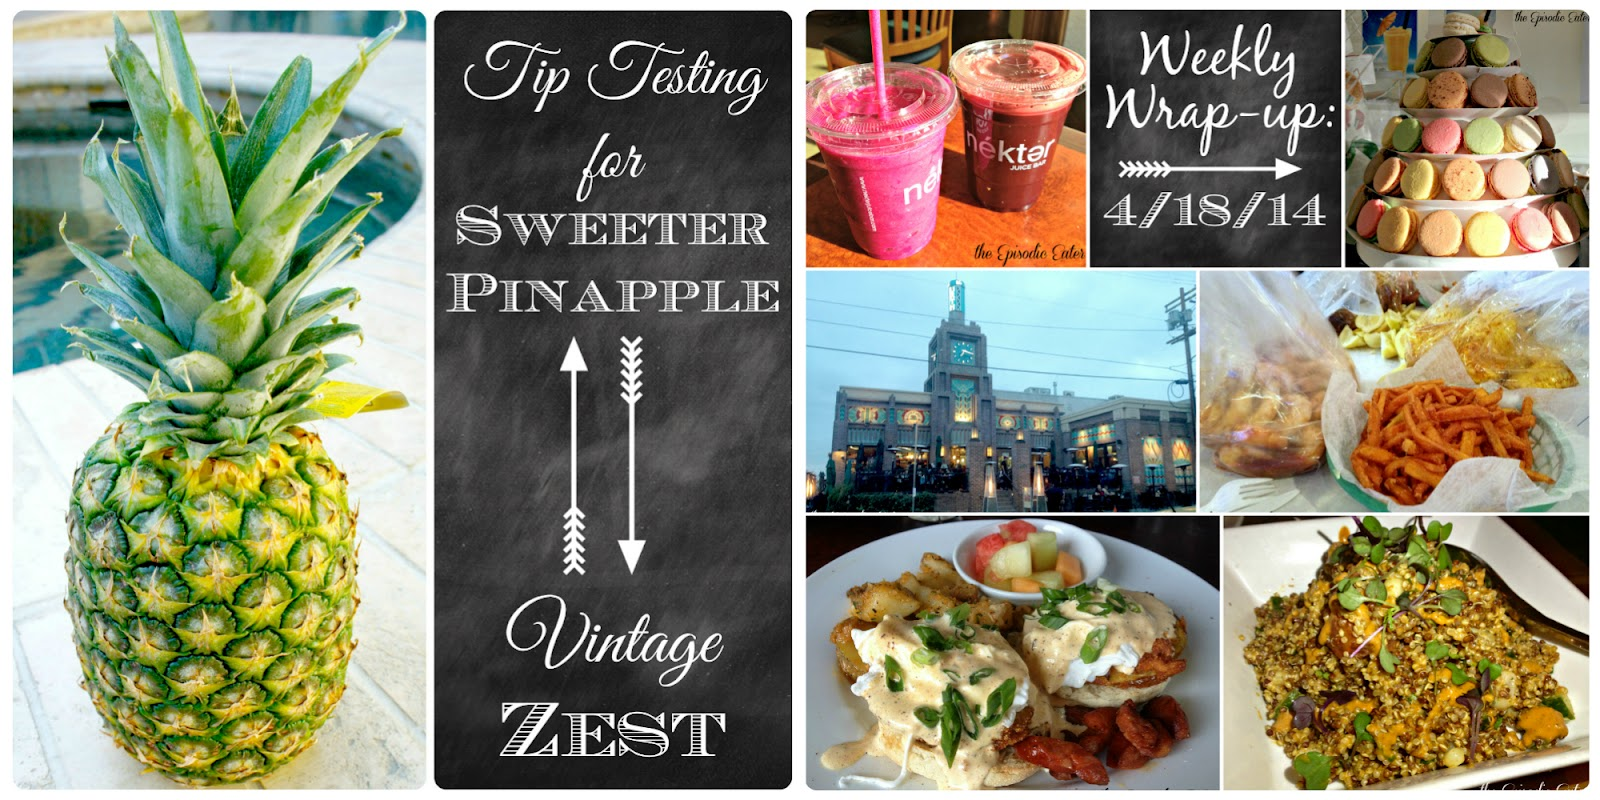 Sunday Synopsis on Diane's Vintage Zest